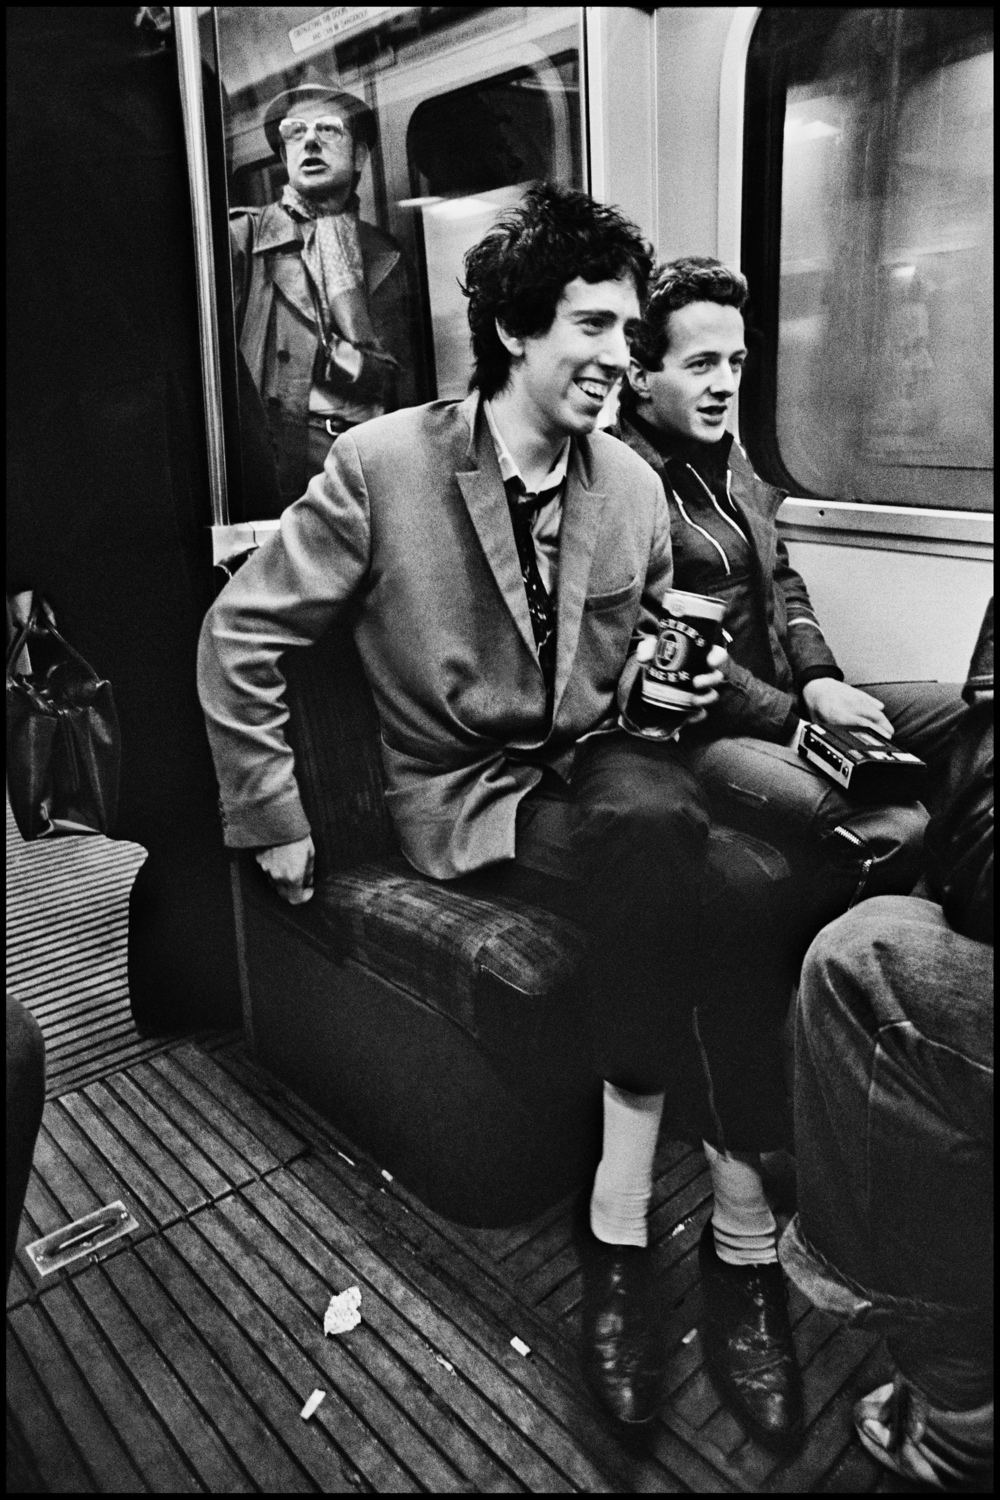 The Clash on the Circle Line 1977 On April 7th 1977 the first Clash LP was released. We put them on the cover of the NME to coincide with this pivotal moment in Rock history. Their manager, Bernie Rhodes, decided that to maintain maximum street credibility the photos and the interview should be done on the Circle Line. Tony Parsons and I were to meet the band at midday on the Baker Street platform. We started the interview but it was incredibly noisy. I took photos but the moving train was not the easiest place to work: the smoking car we were in was filthy and I was also worried about camera shake.  In the end we used a close head shot photo for the cover, and this frame was never used. So for more than 35 years it has remained unseen, but I think it stands the test of time quite well. What comes across to me is just how young we all were back then, in 1977.